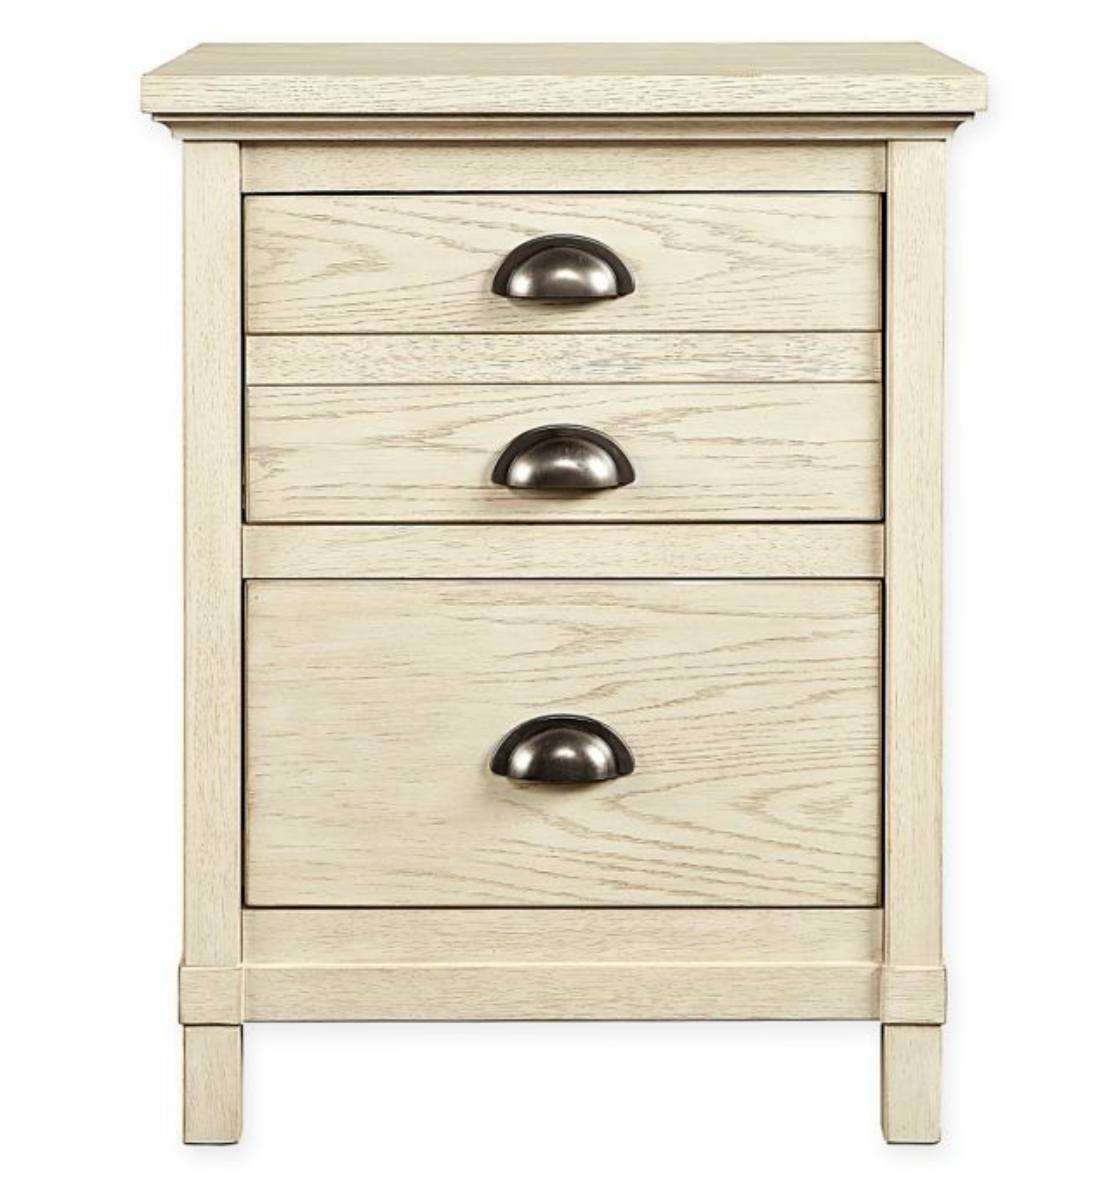 Stone & Leigh   Driftwood Park   Nightstand